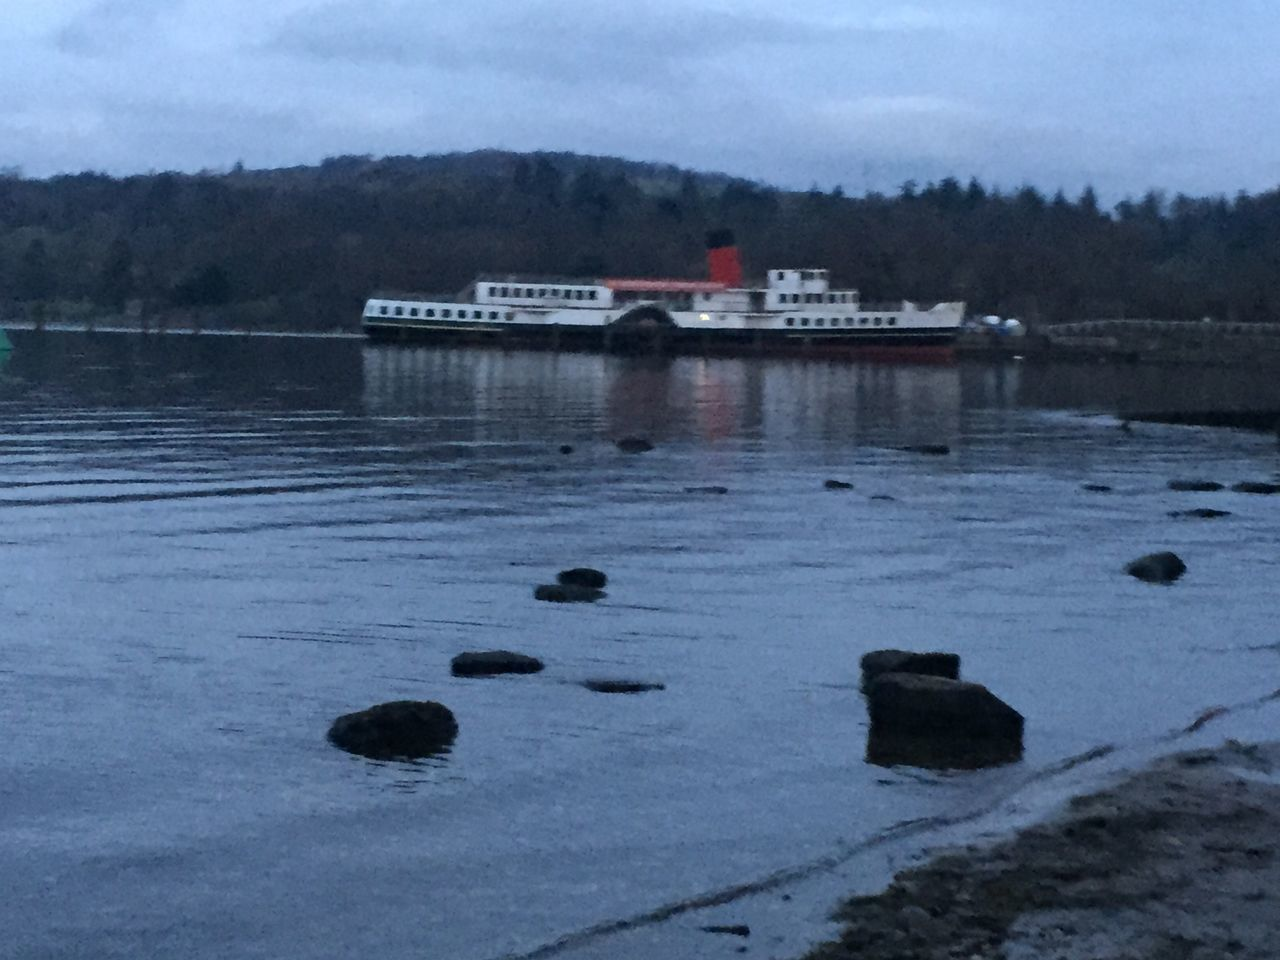 LochLomond Calm Boat Mode Of Transport Focus On Foreground No People Water Trees Outdoors Rocks Rocks And Water Paddle Steamer Landscape Tranquil Scene Weather Beauty In Nature Scenics